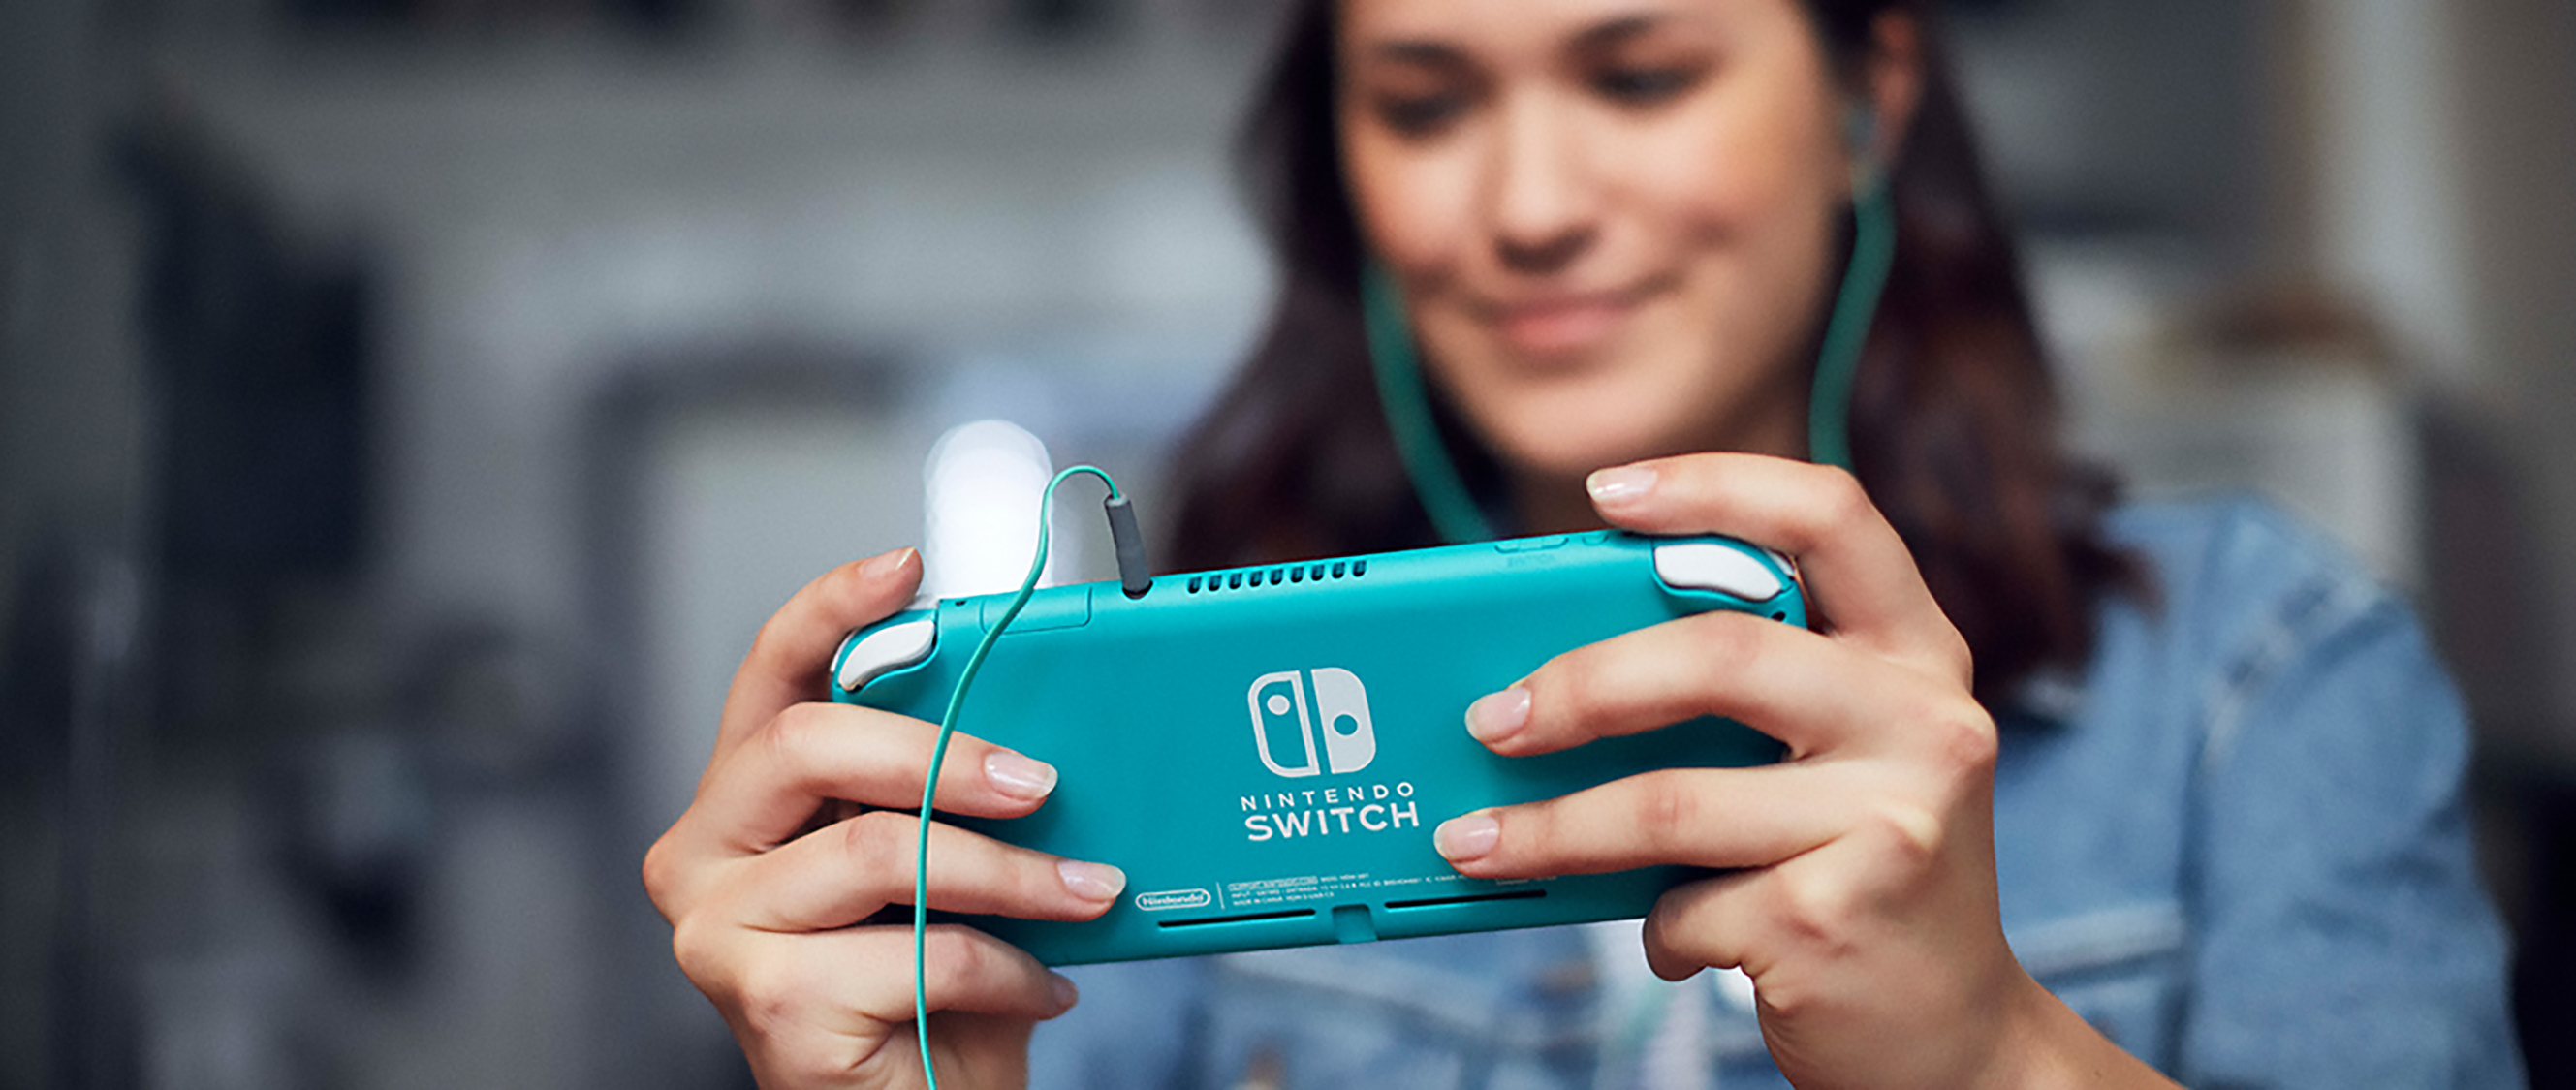 Nintendo has launched a cloud streaming service for the Switch